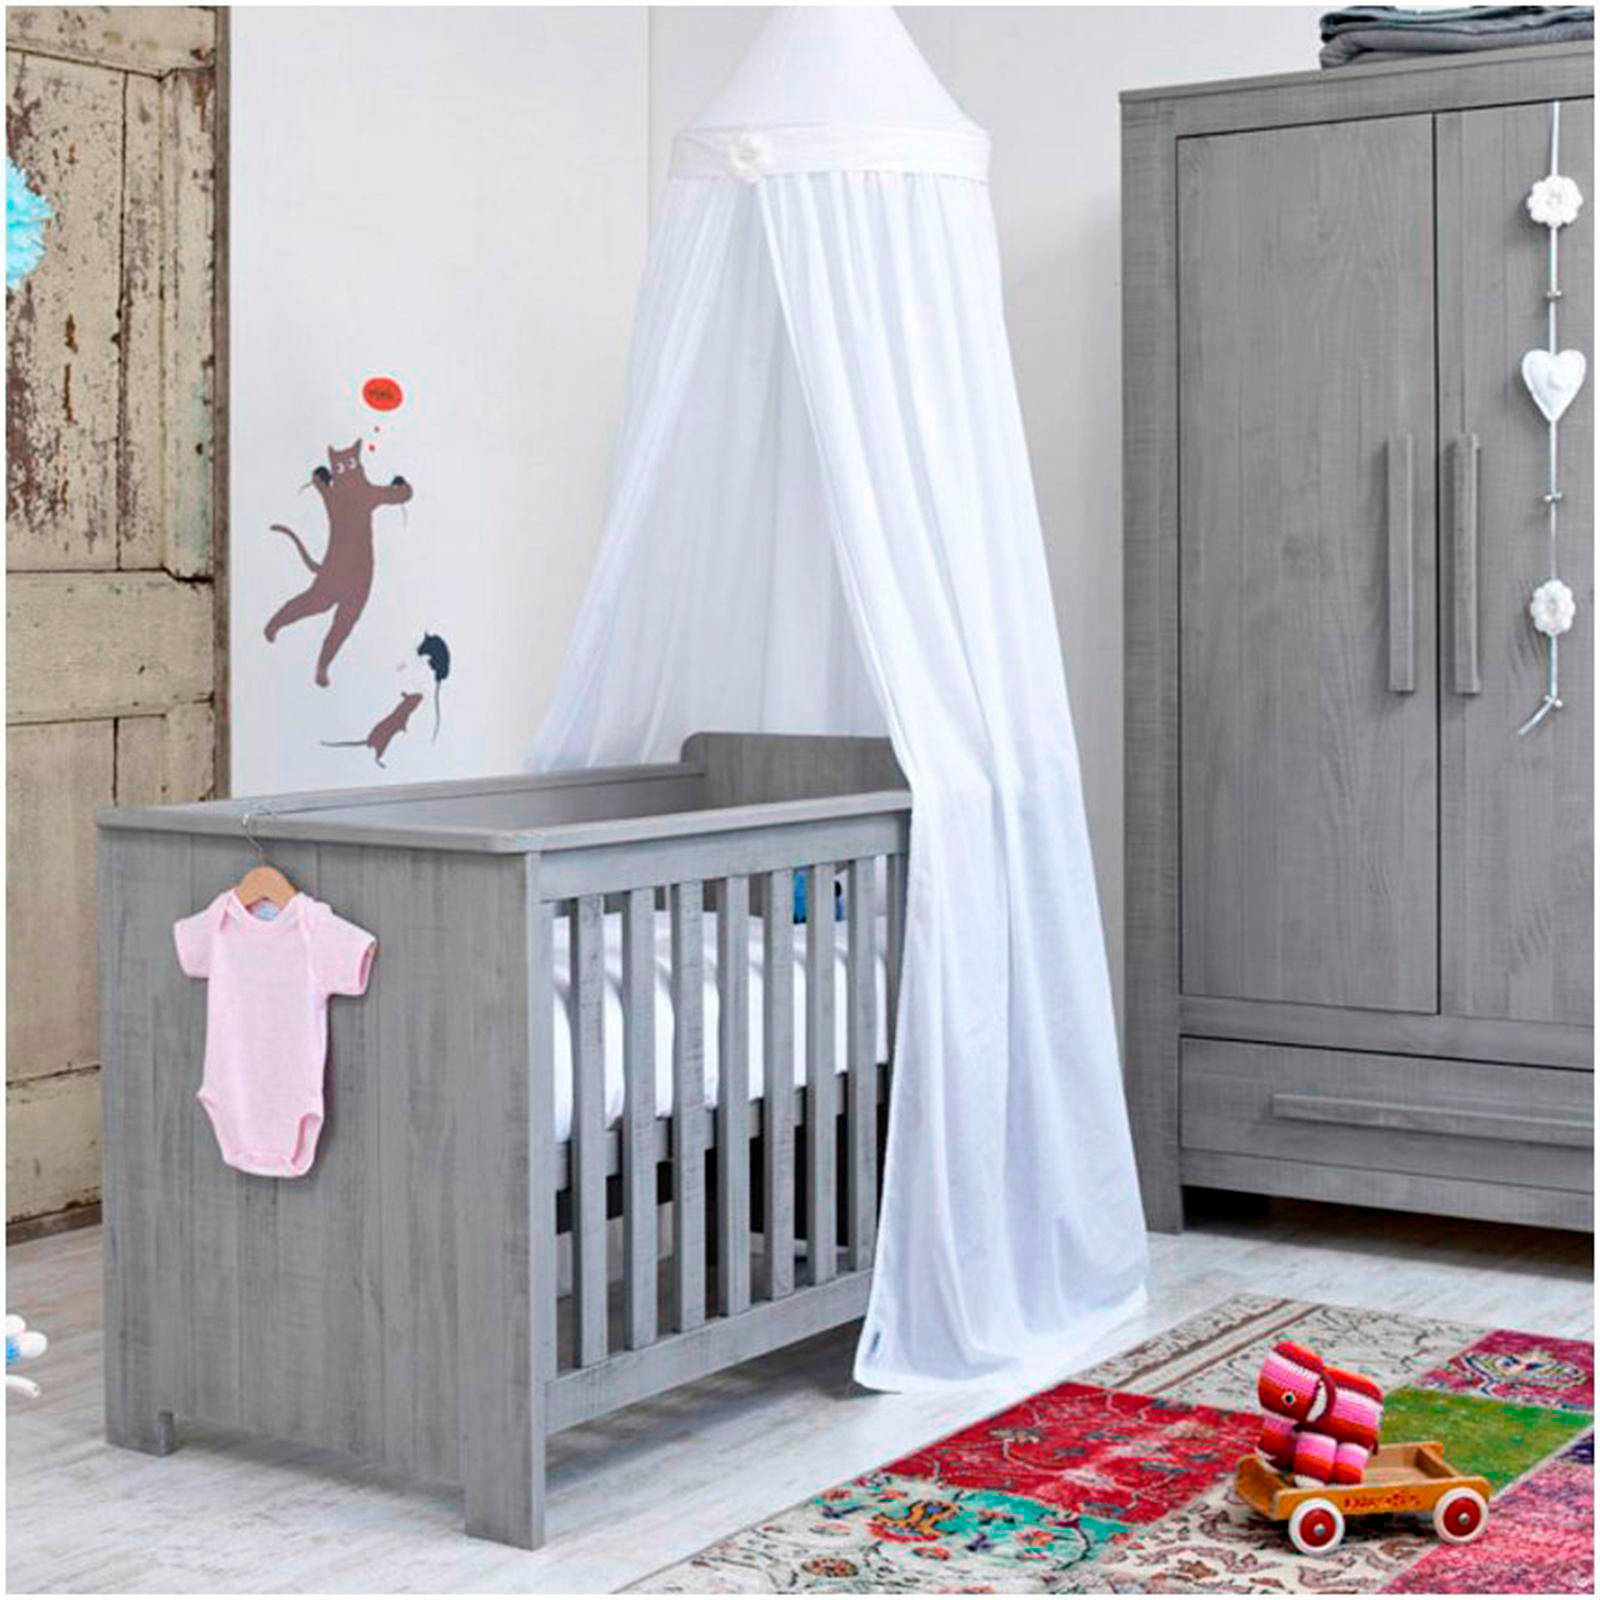 Coming Kids Zanzi babykamer (ledikant + commode + linnenkast)